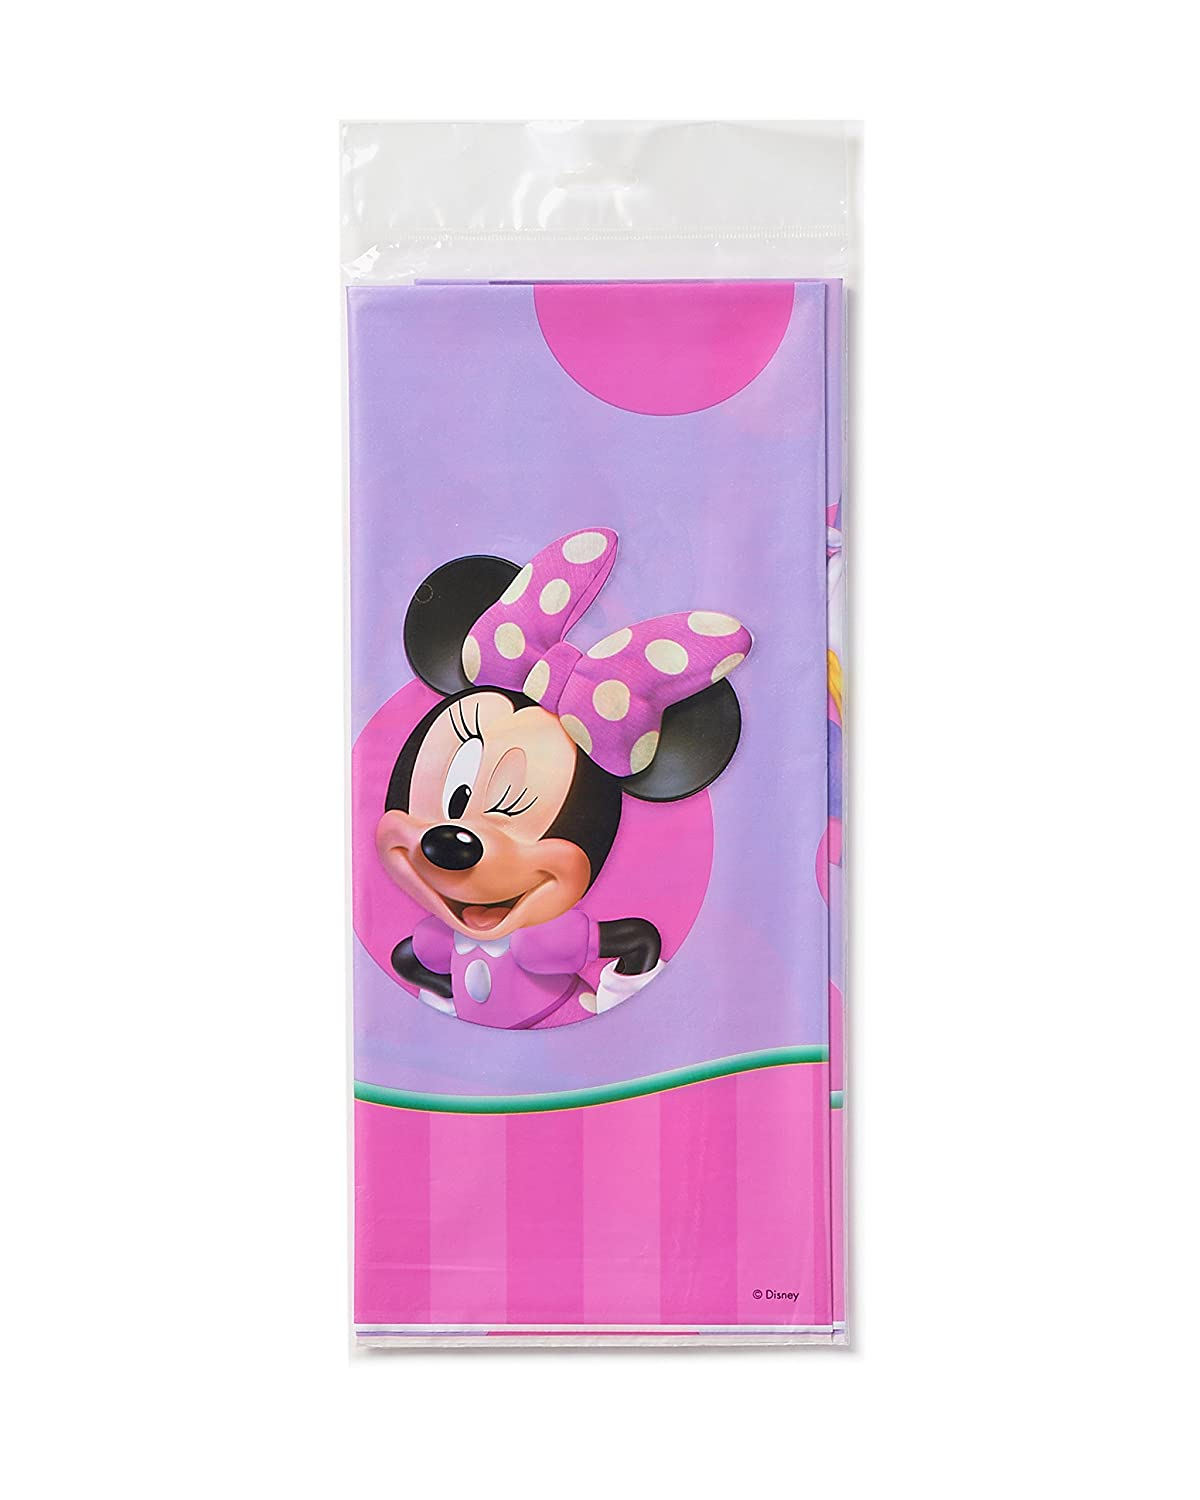 American Greetings Minnie Mouse Party Supplies 16 oz Reusable Plastic Party Cup 12-Count